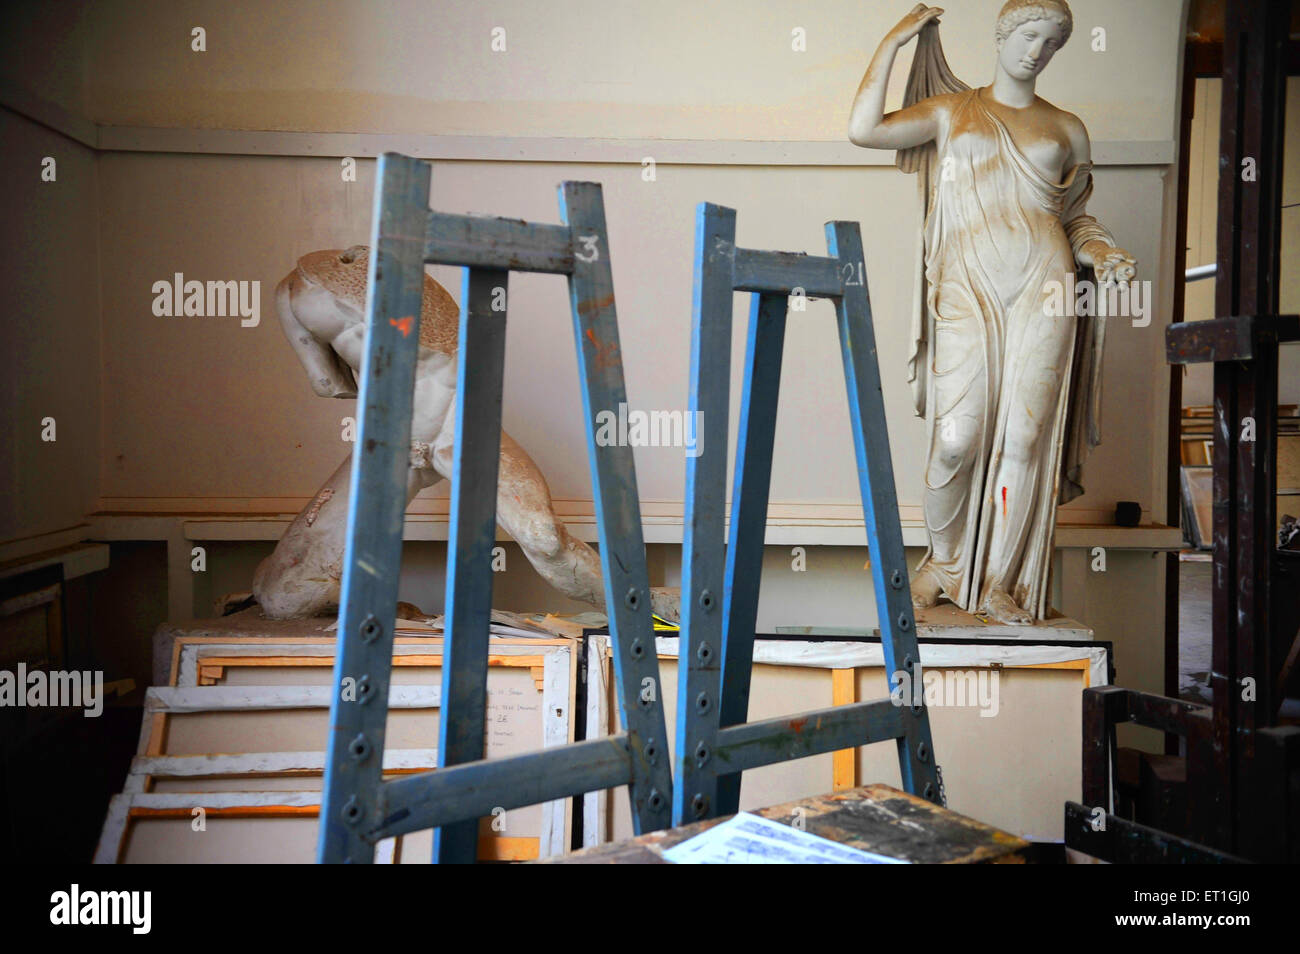 Sculpture Art School High Resolution Stock Photography And Images Alamy